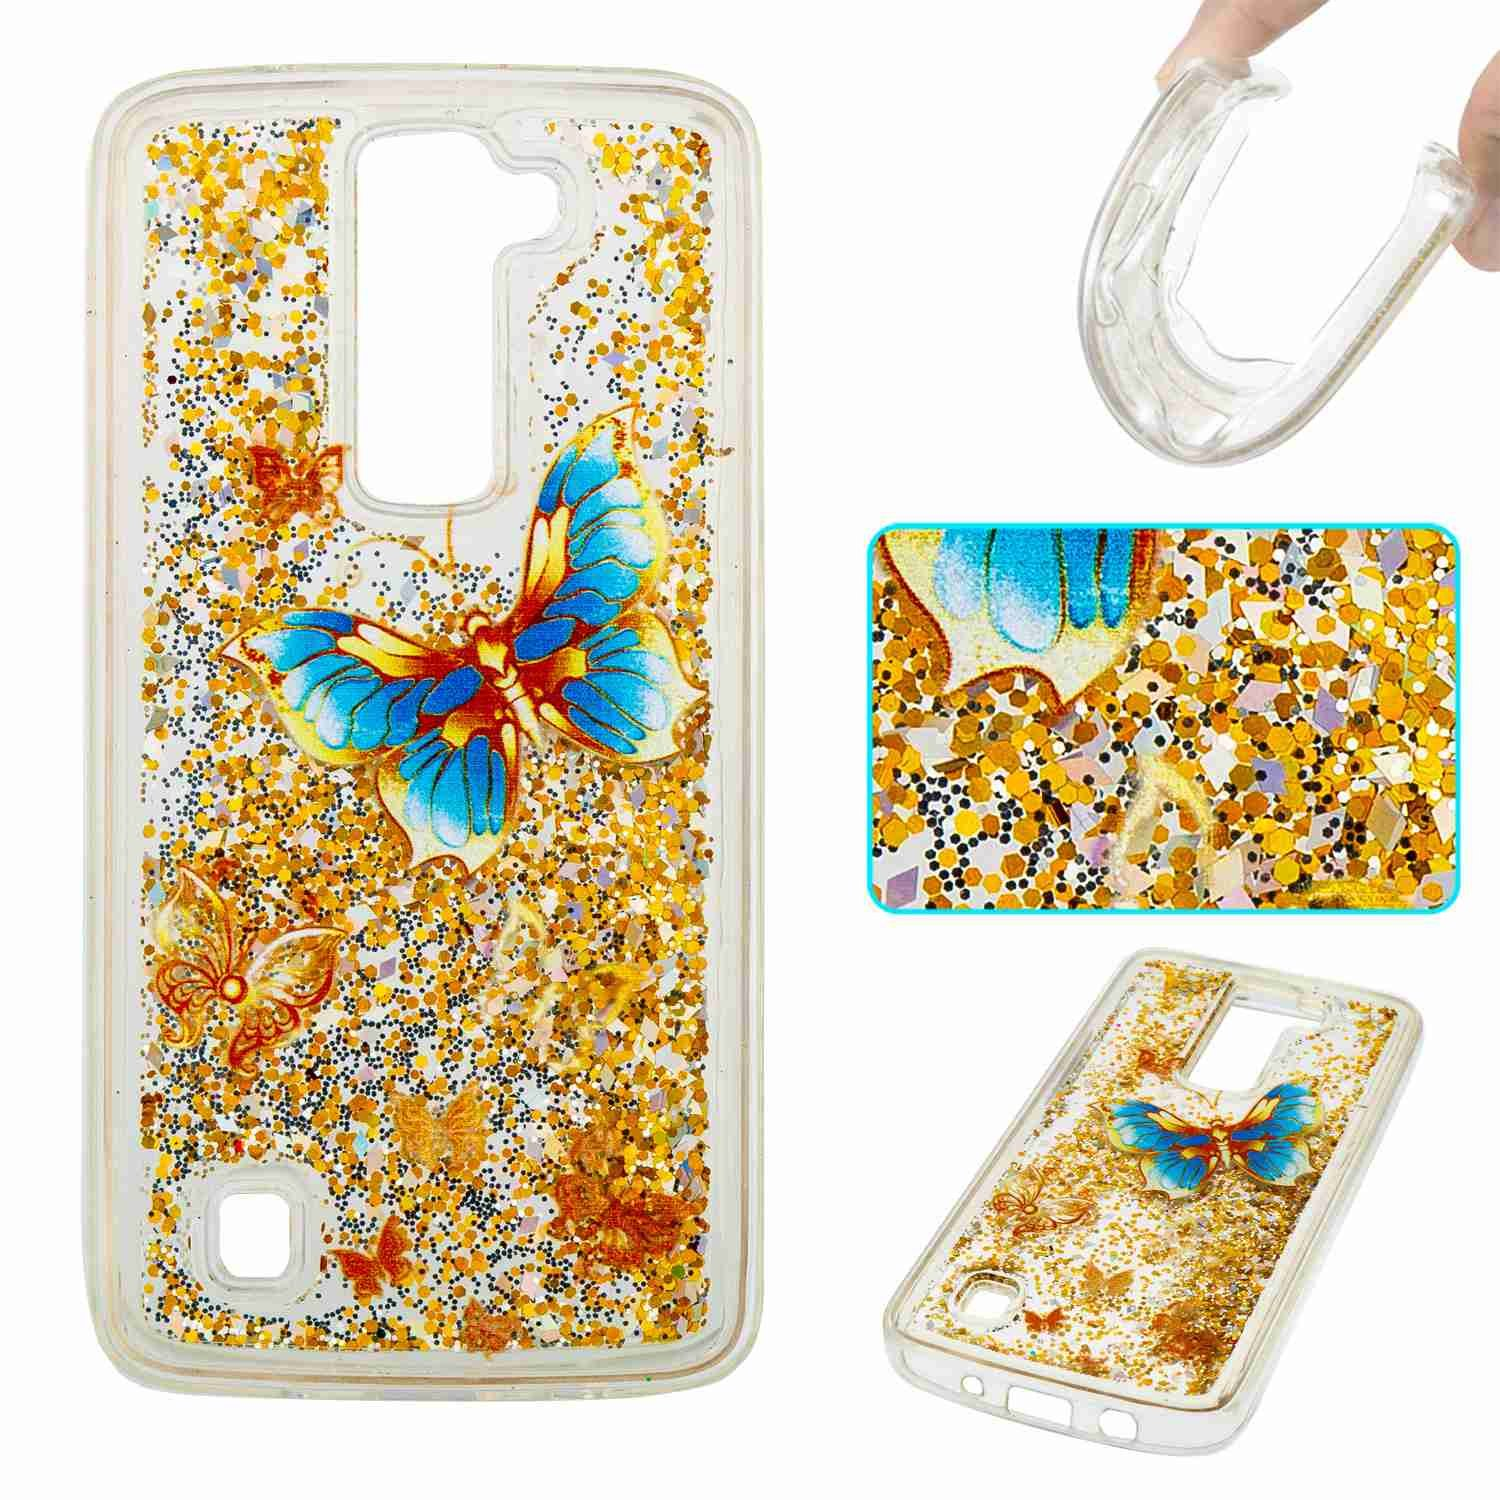 STENES LG K8 Case - 3D Creative Luxury Bling Glitter Sparkle Liquid Case Infused With Glitter and Stars Moving Quicksand Soft Case For LG Phoenix 2 /Escape 3 /LG K8 (2016) - Gold Blue Butterfly